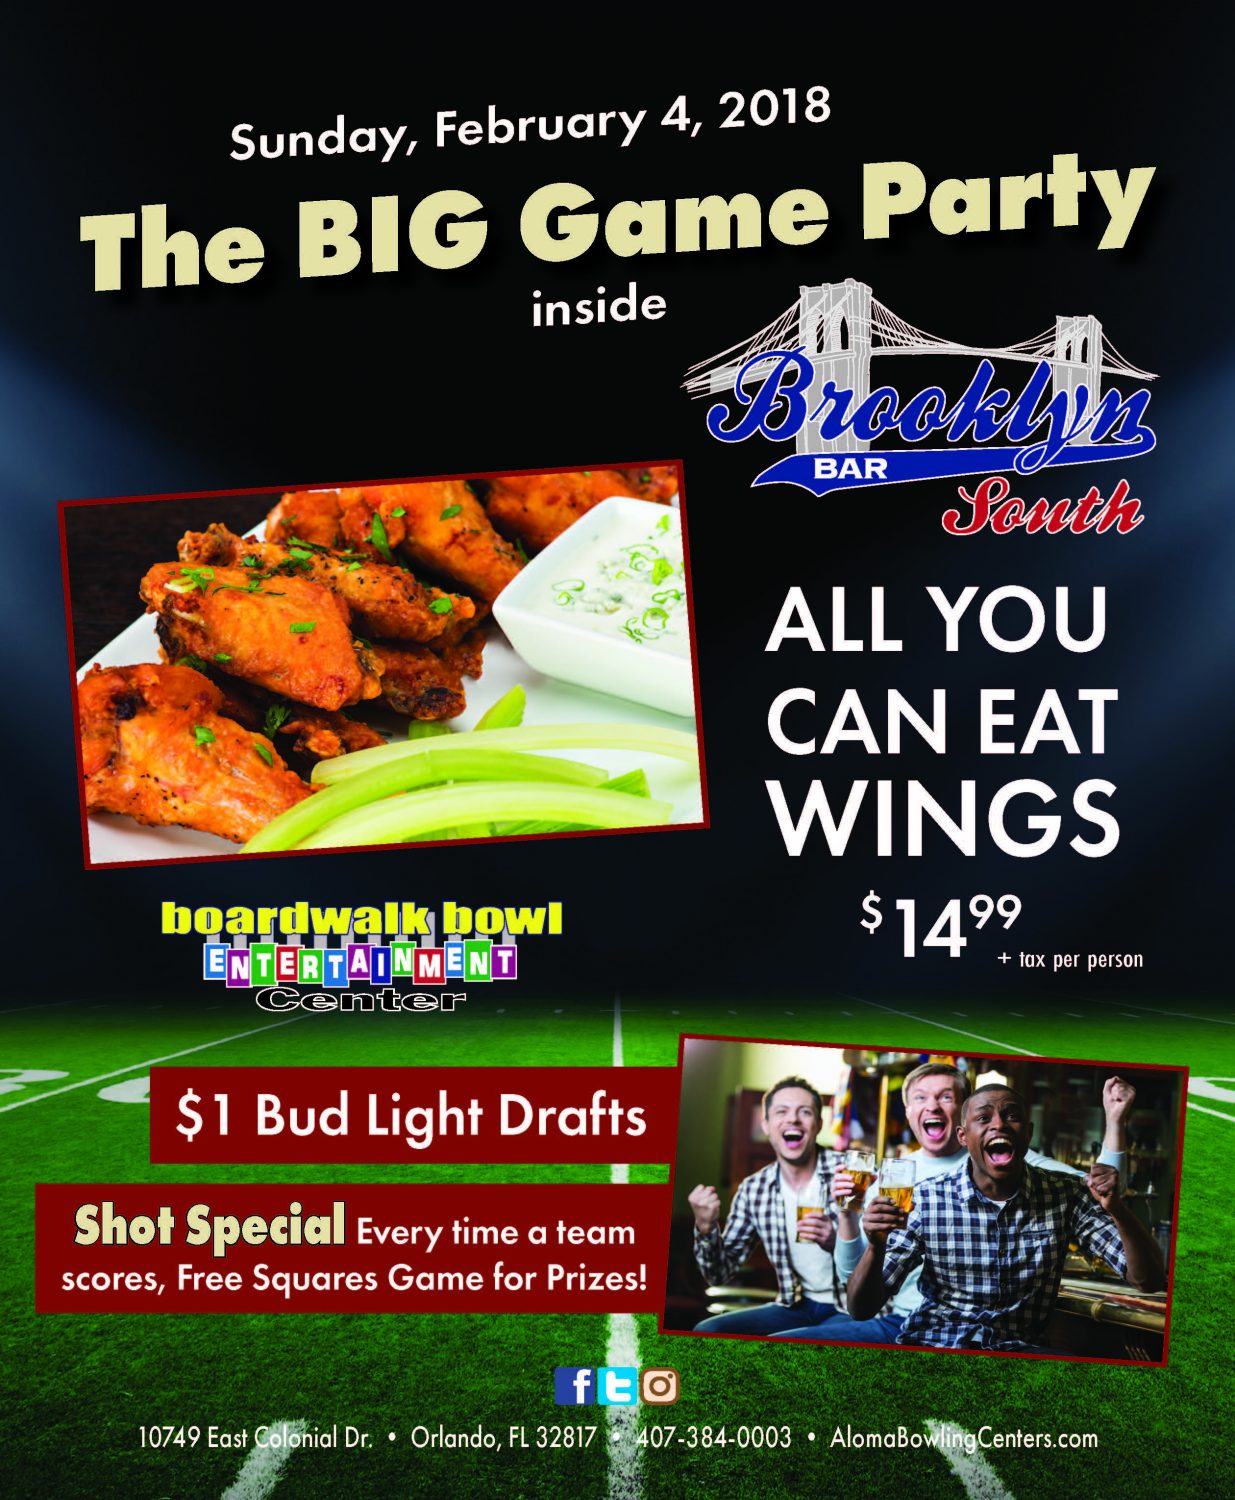 The Big Game Party Specials